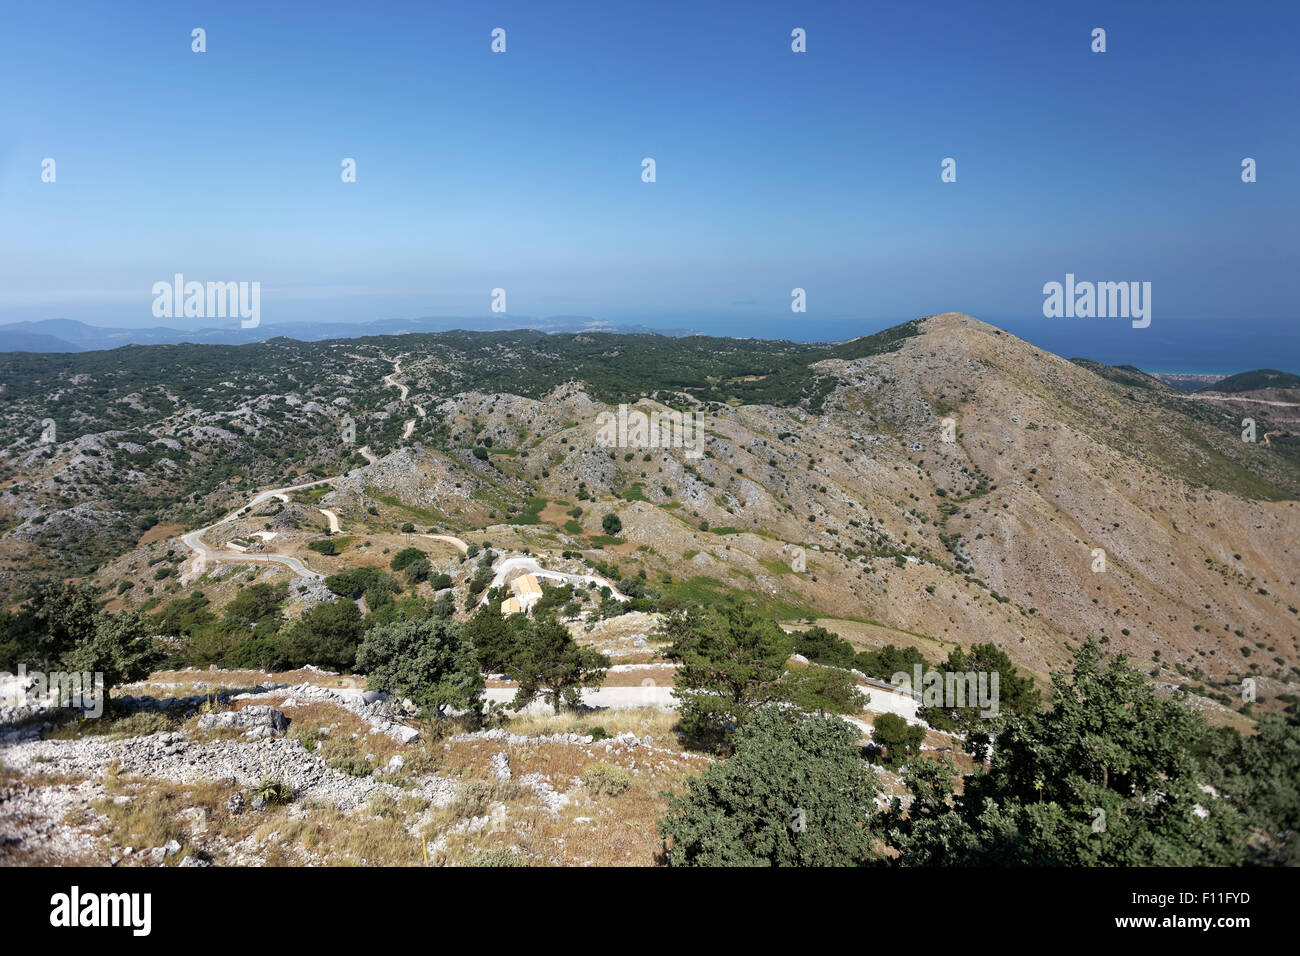 View of the island from Mount Pantokrator, Ionian Islands, Greece Stock Photo